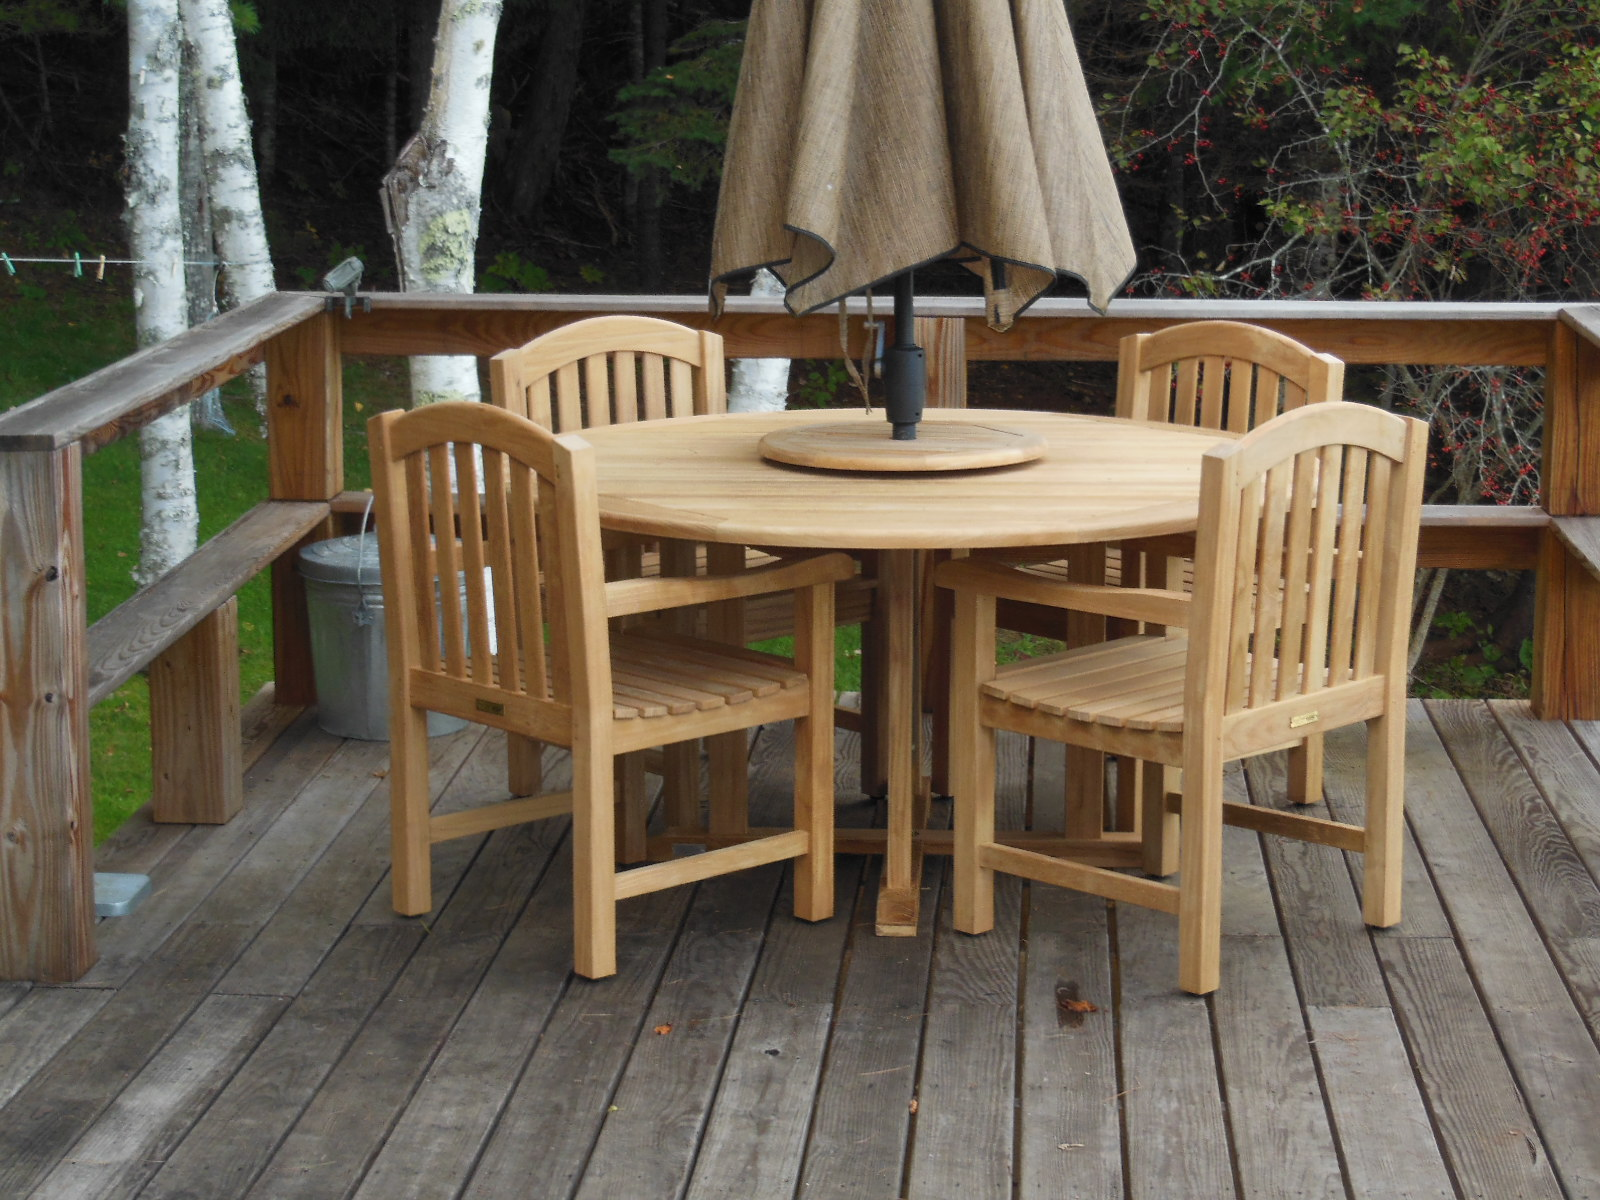 Goldenteak's Padua Round Teak Table 48in and 4 Aquinah Chairs with Arms (RACH04), private residence